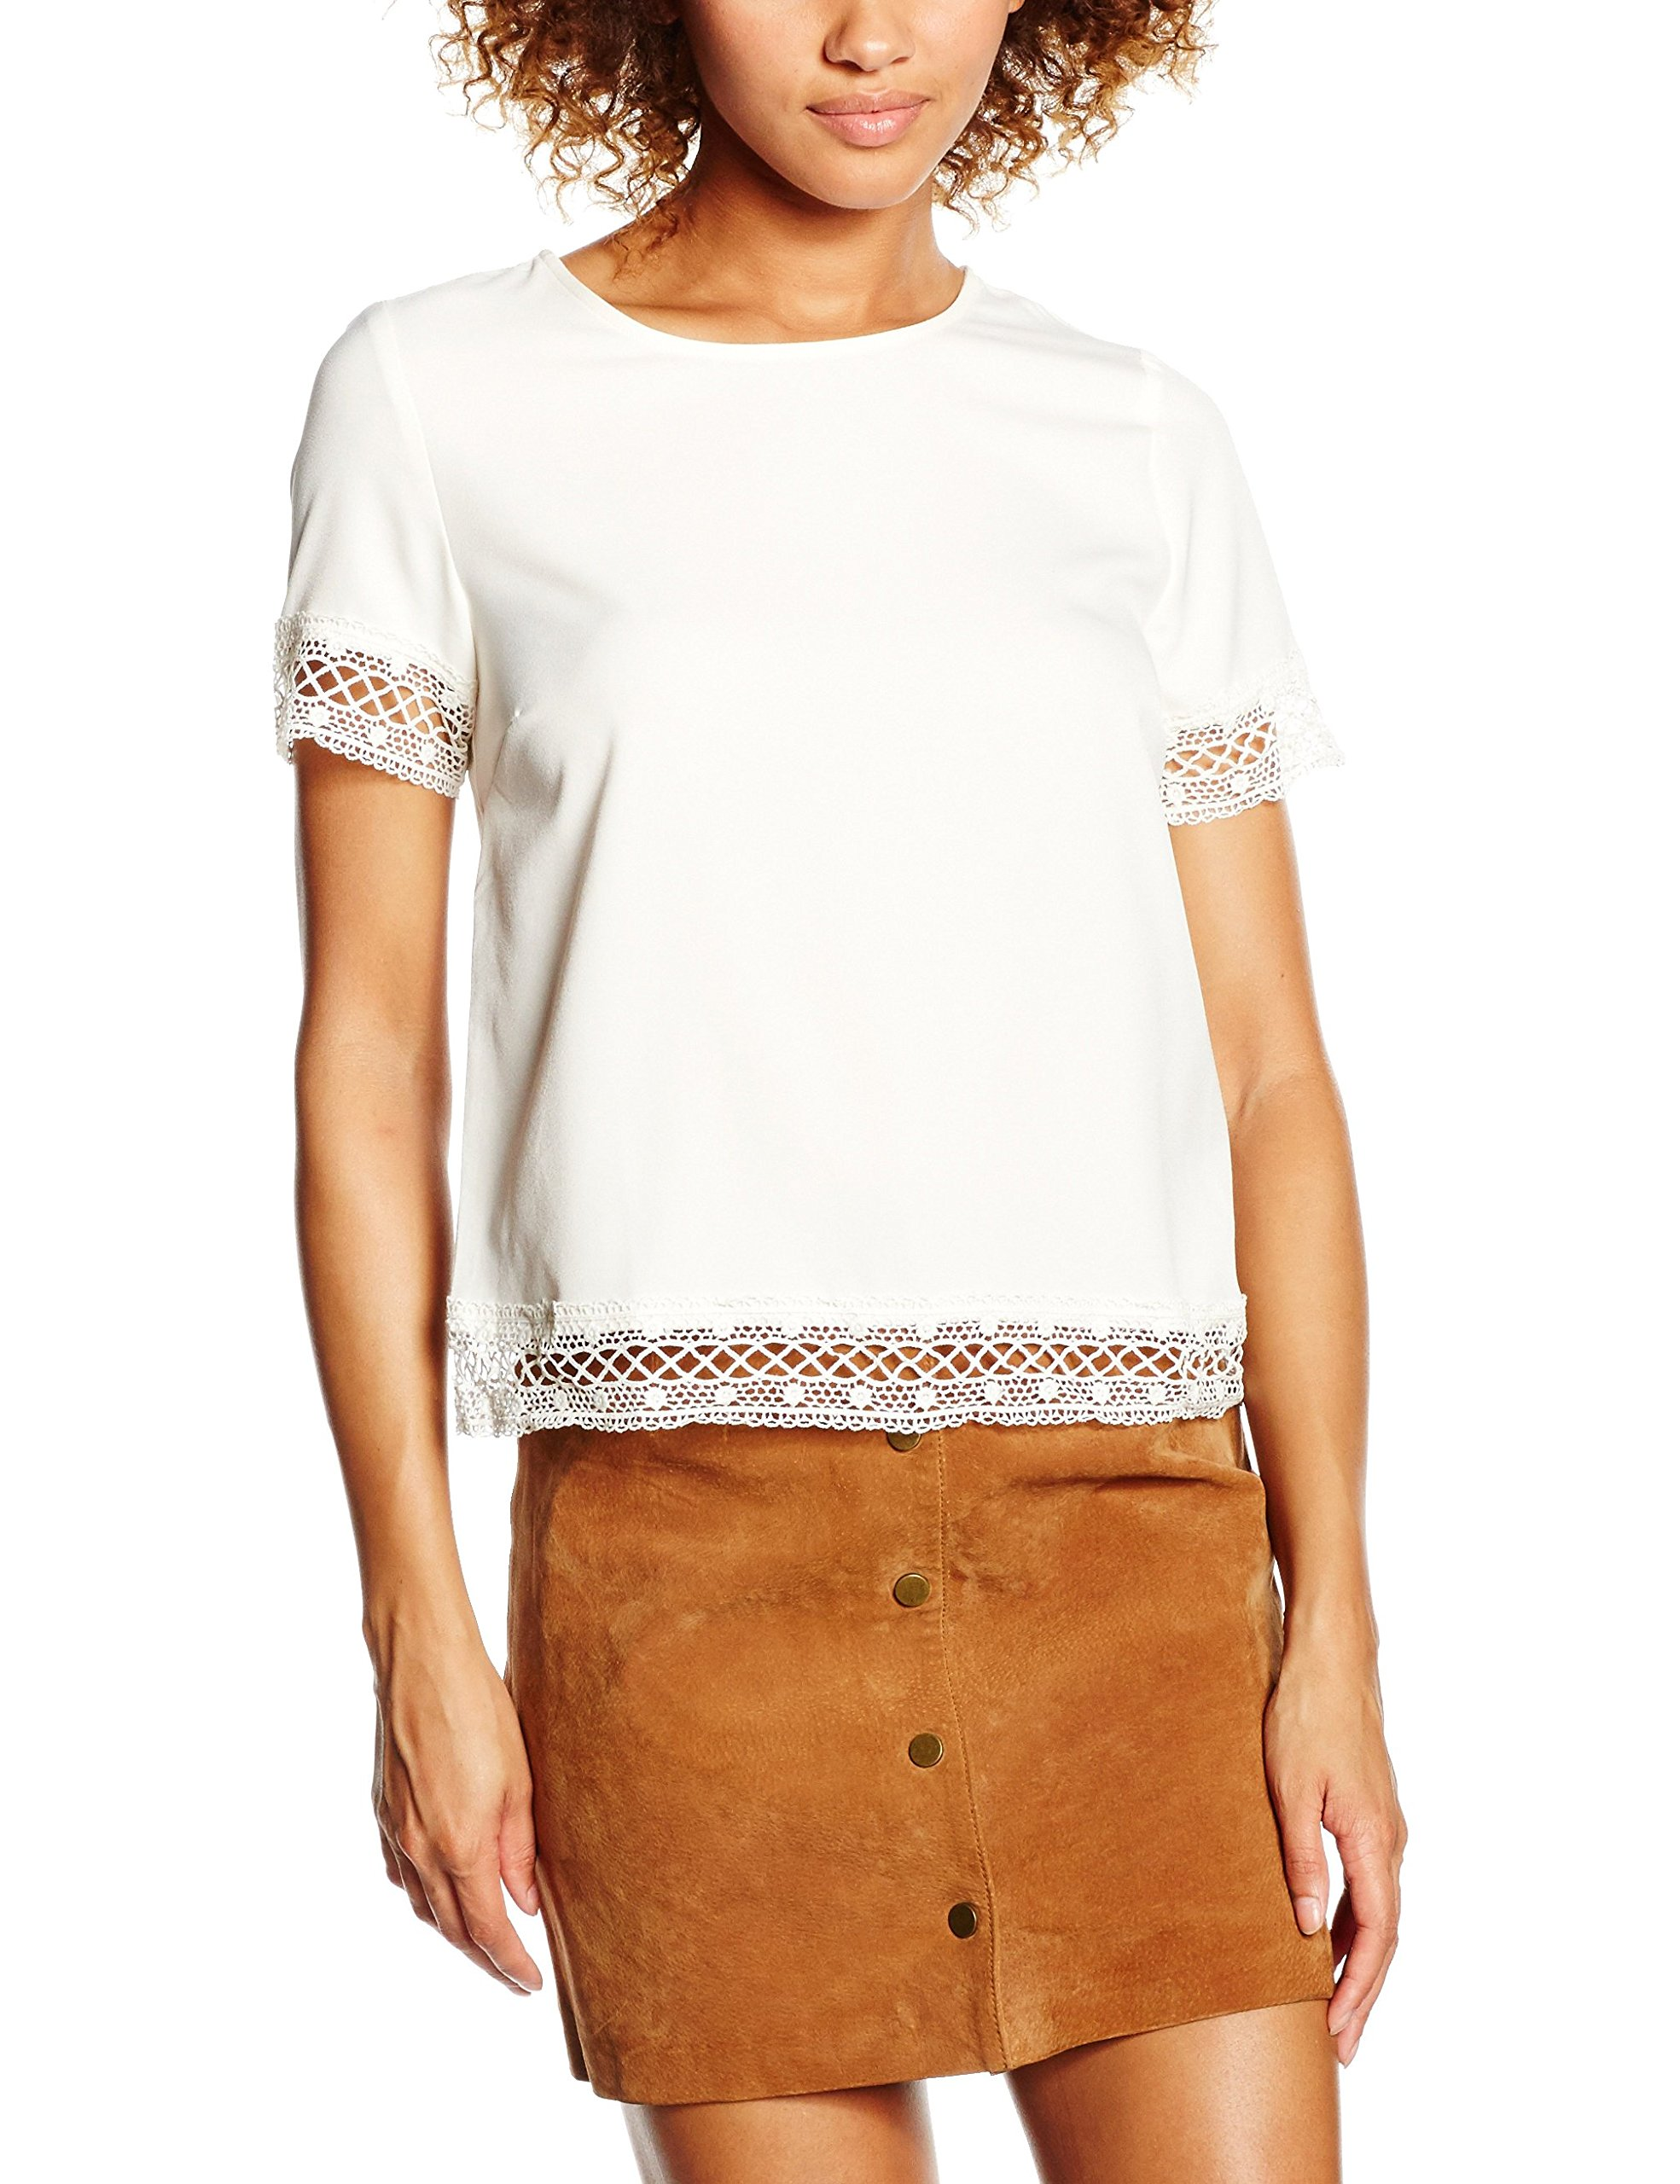 New Look Lace Trim, Top Donna, Bianco Avorio, 36